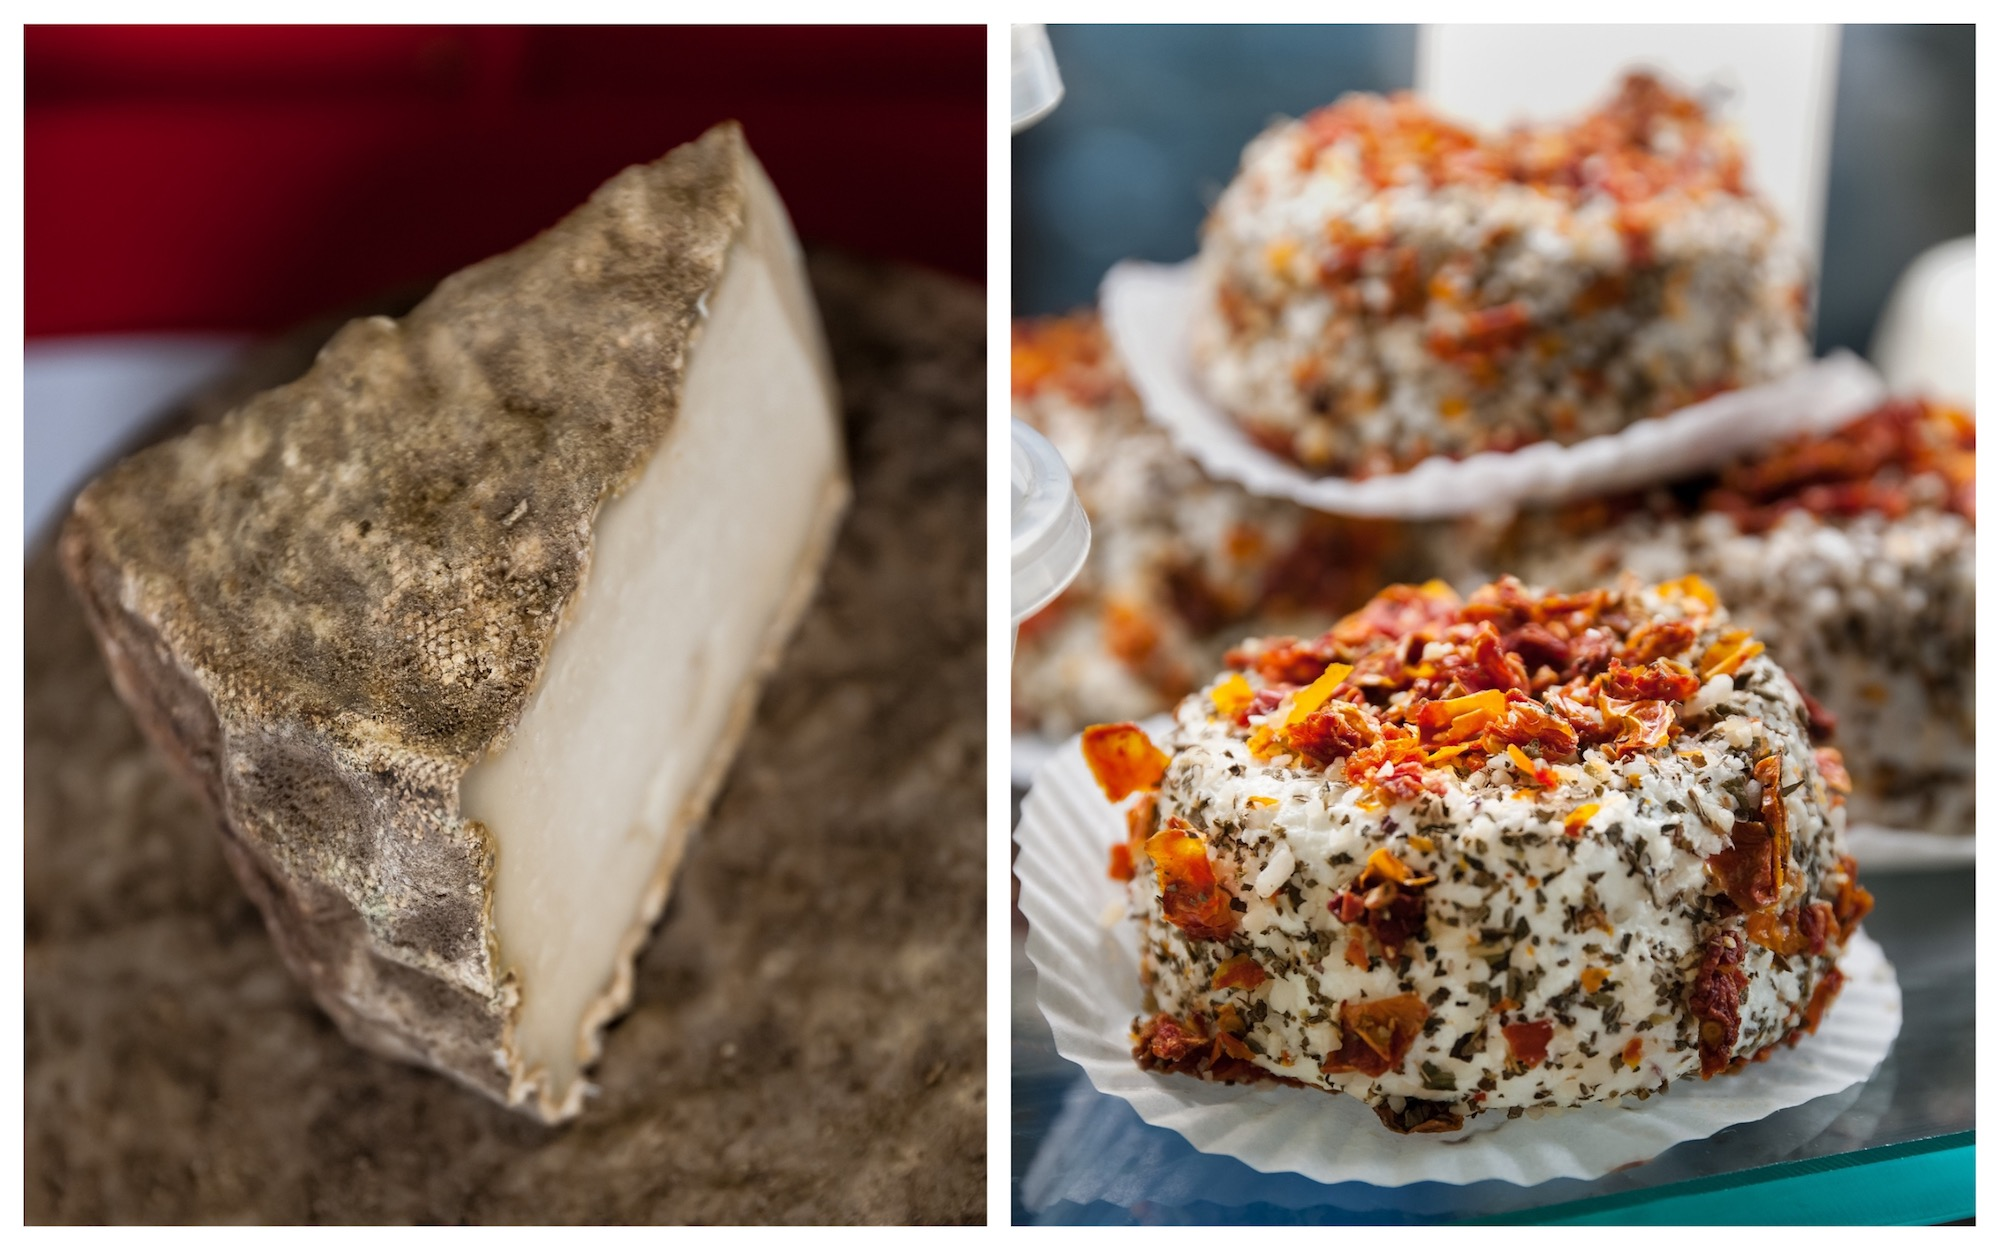 HiP Paris Blog discovers Paris' first cheese dairy La Laiterie de Paris which produces some of the city's finest cheeses like this Saint Nectaire (left) and pepper and dried tomato goat's cheese (right).